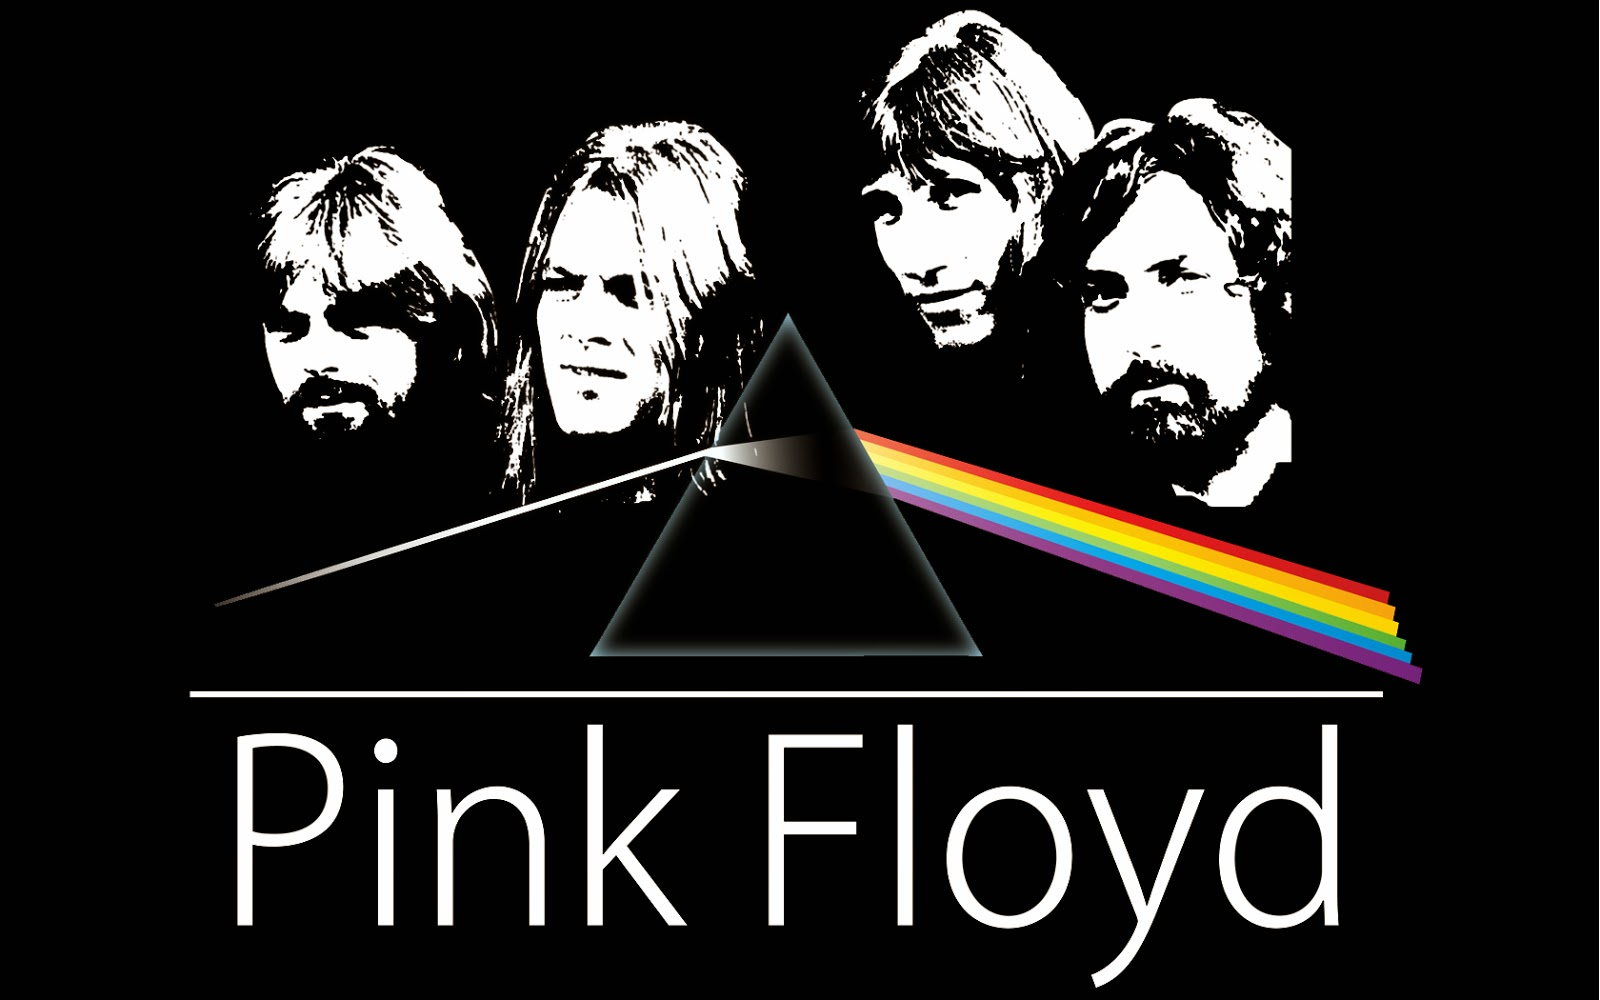 The Dark Side of the Moon, DOCUMENTAL SUBTITULADO. Álbum lanzado por la banda inglesa Pink Floyd en 1973, permaneció casi 750 semanas en las listas de éxito, unos 14 años. ✅